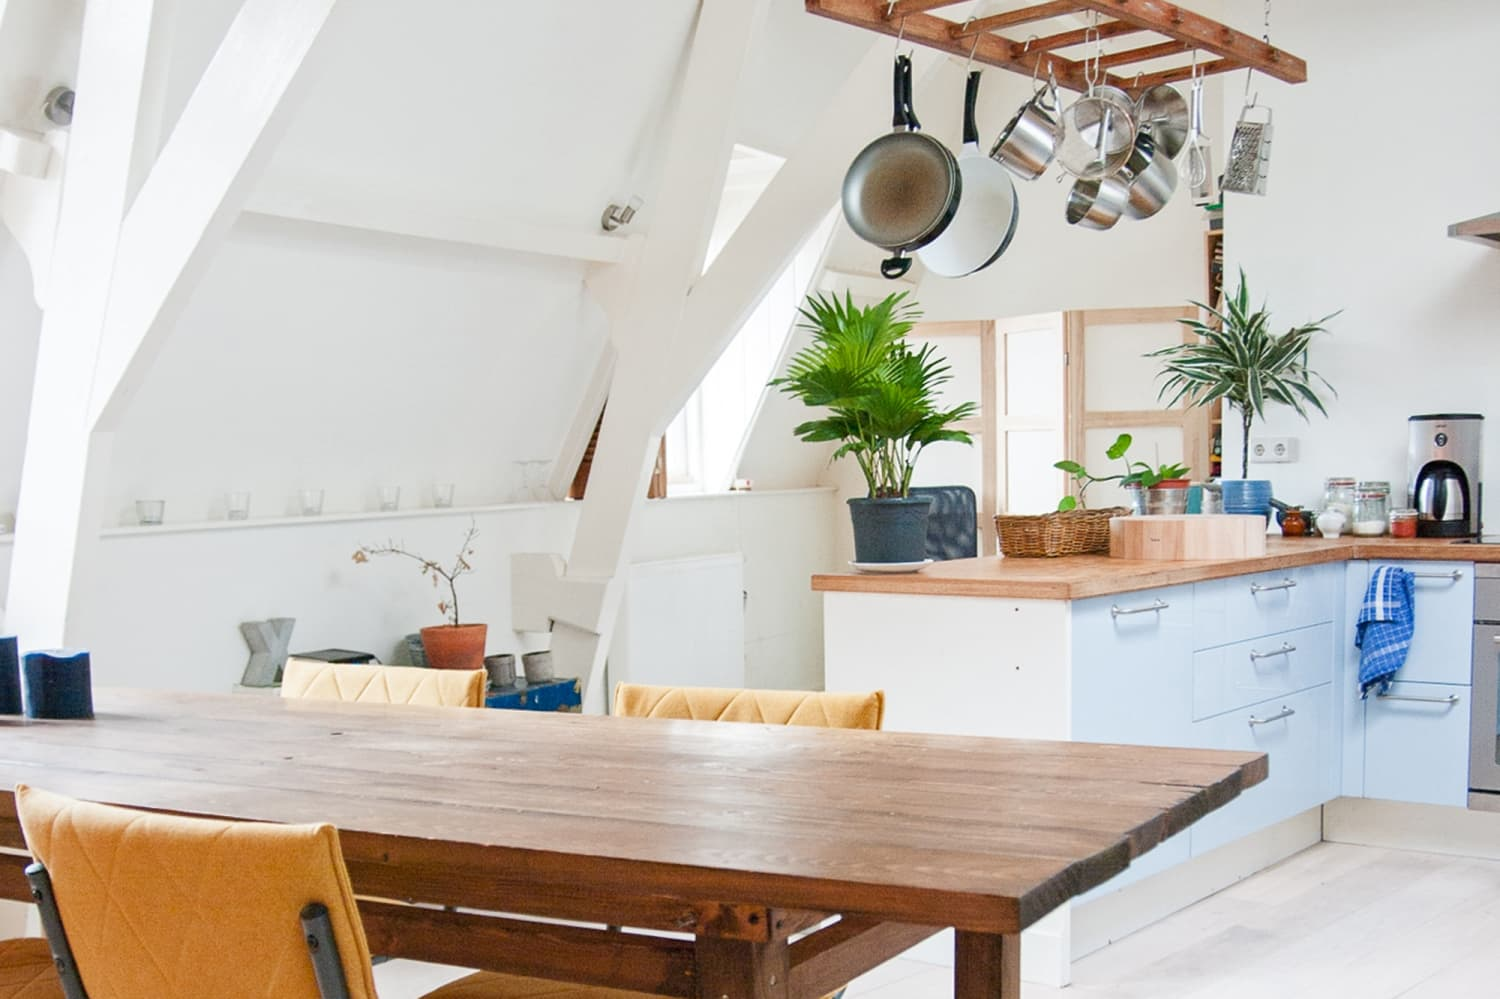 13 Small Areas You Need to Clean First if You Want to Start from the Top